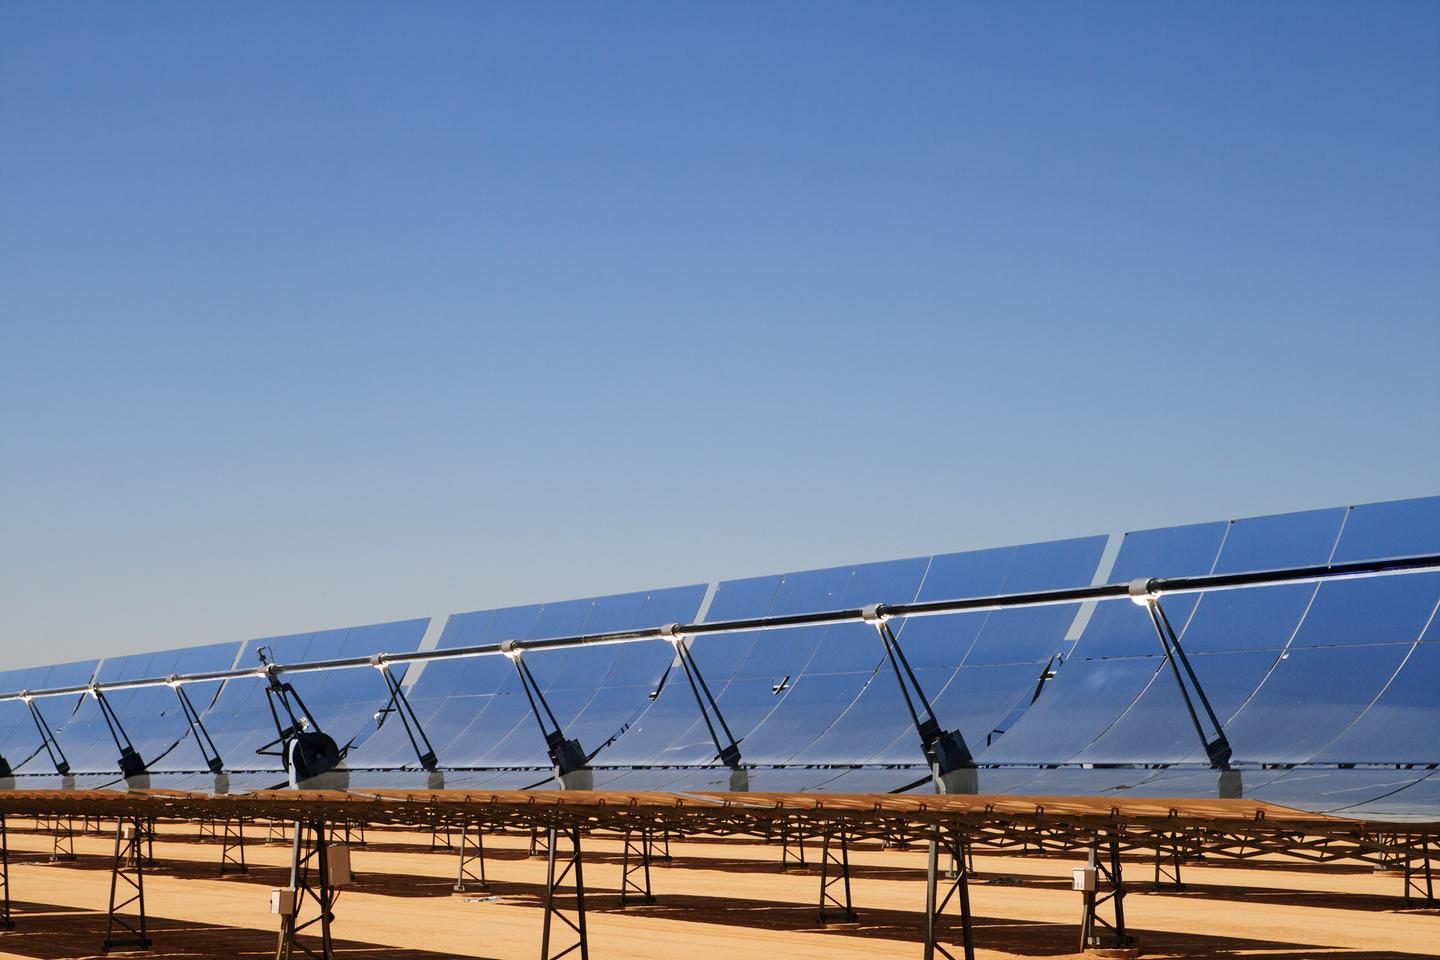 A large, distributed network of concentrated solar power plants in desert regions could run at 80 percent full capacity year round (Photo: Shutterstock)